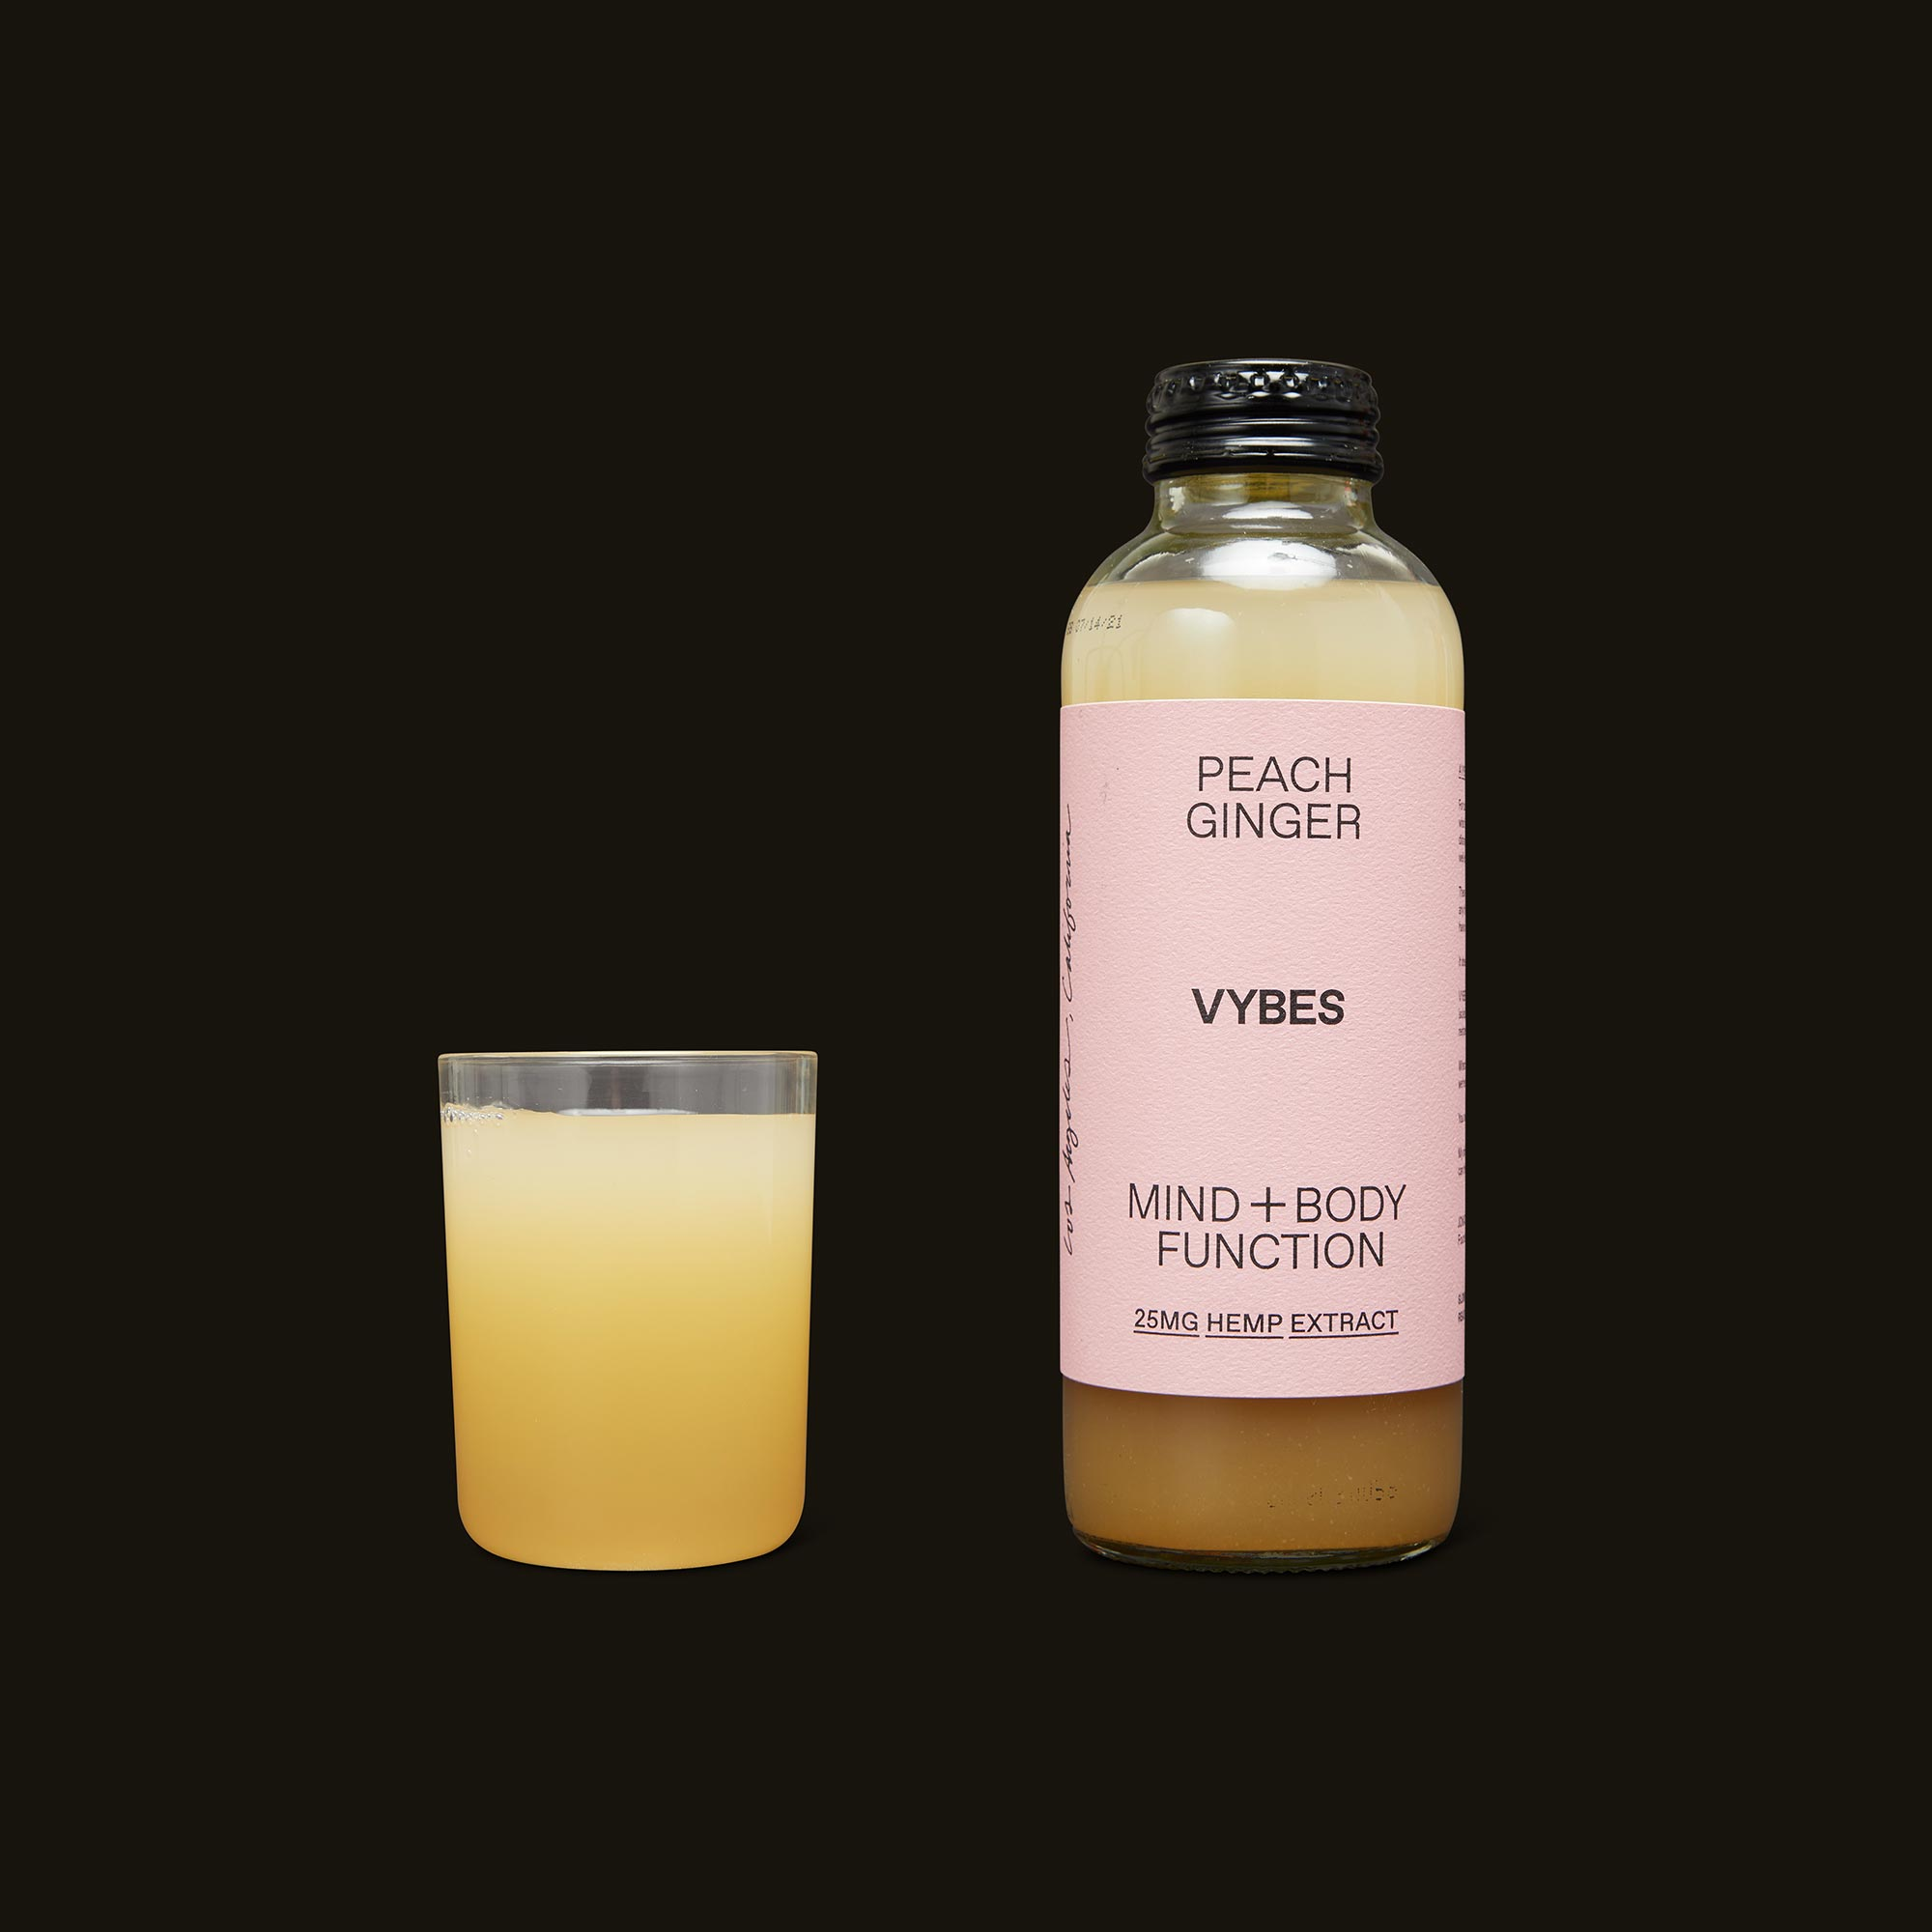 VYBES Peach Ginger